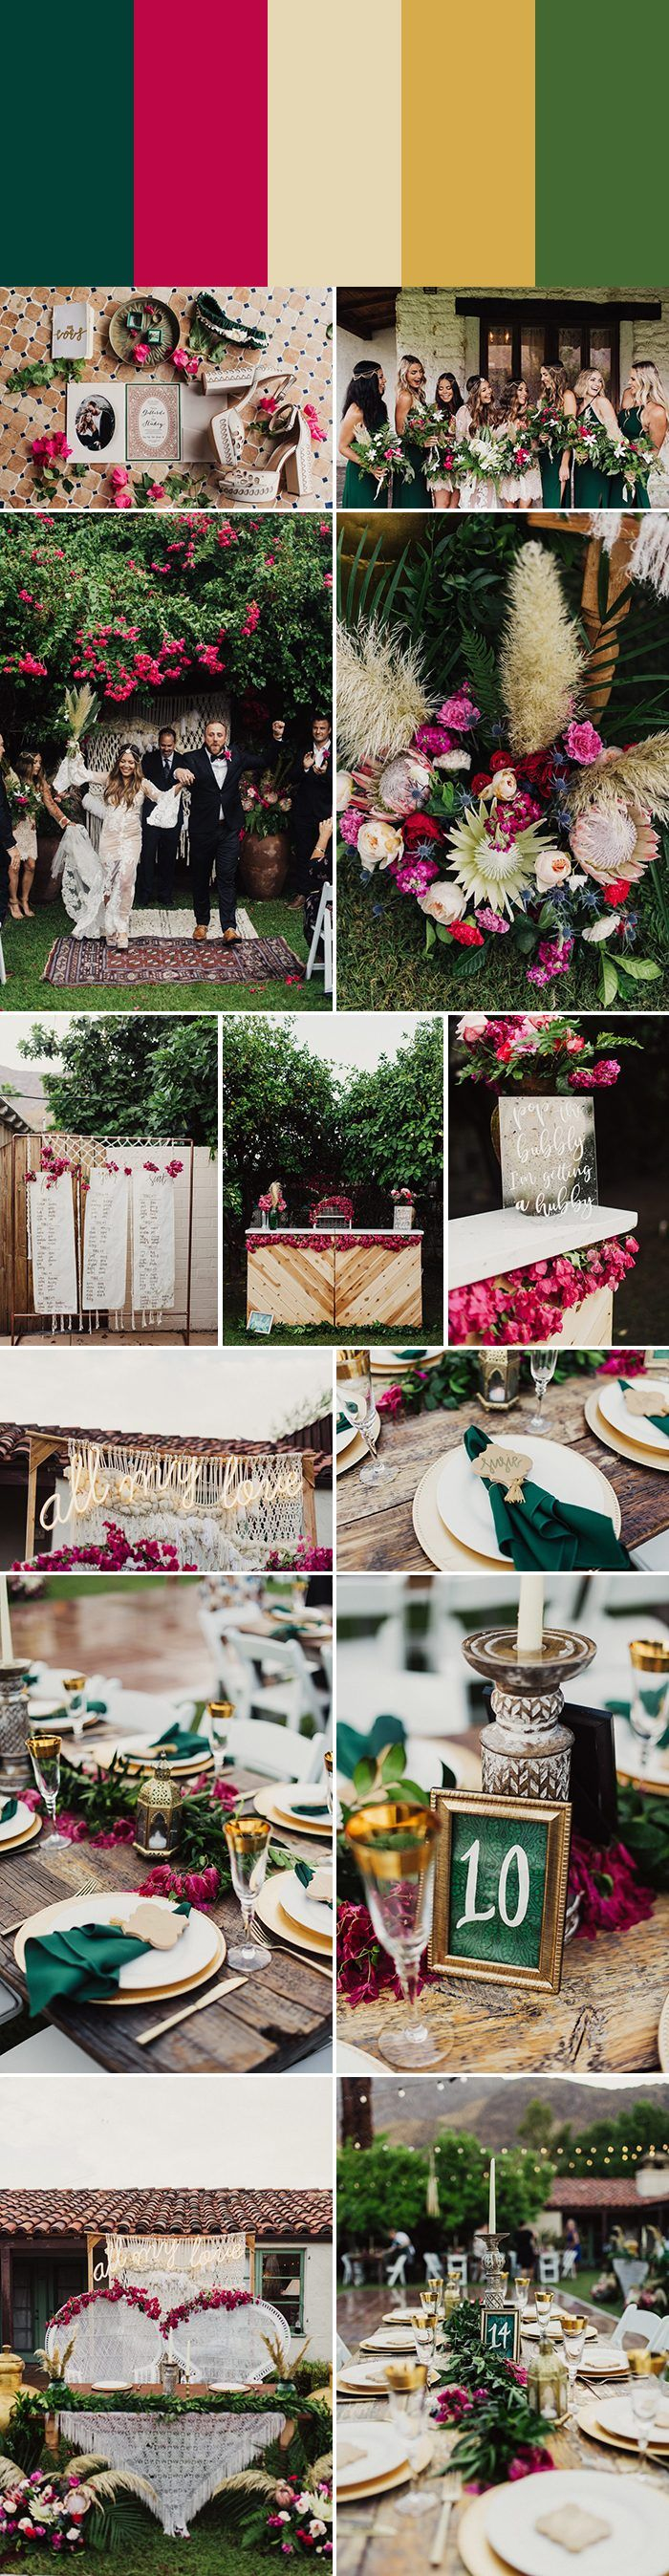 2018 Wedding Color Palette Inspiration: emerald + bougainvillea + pampas grass + bright gold + grass green | Image by Eden Strader Photography